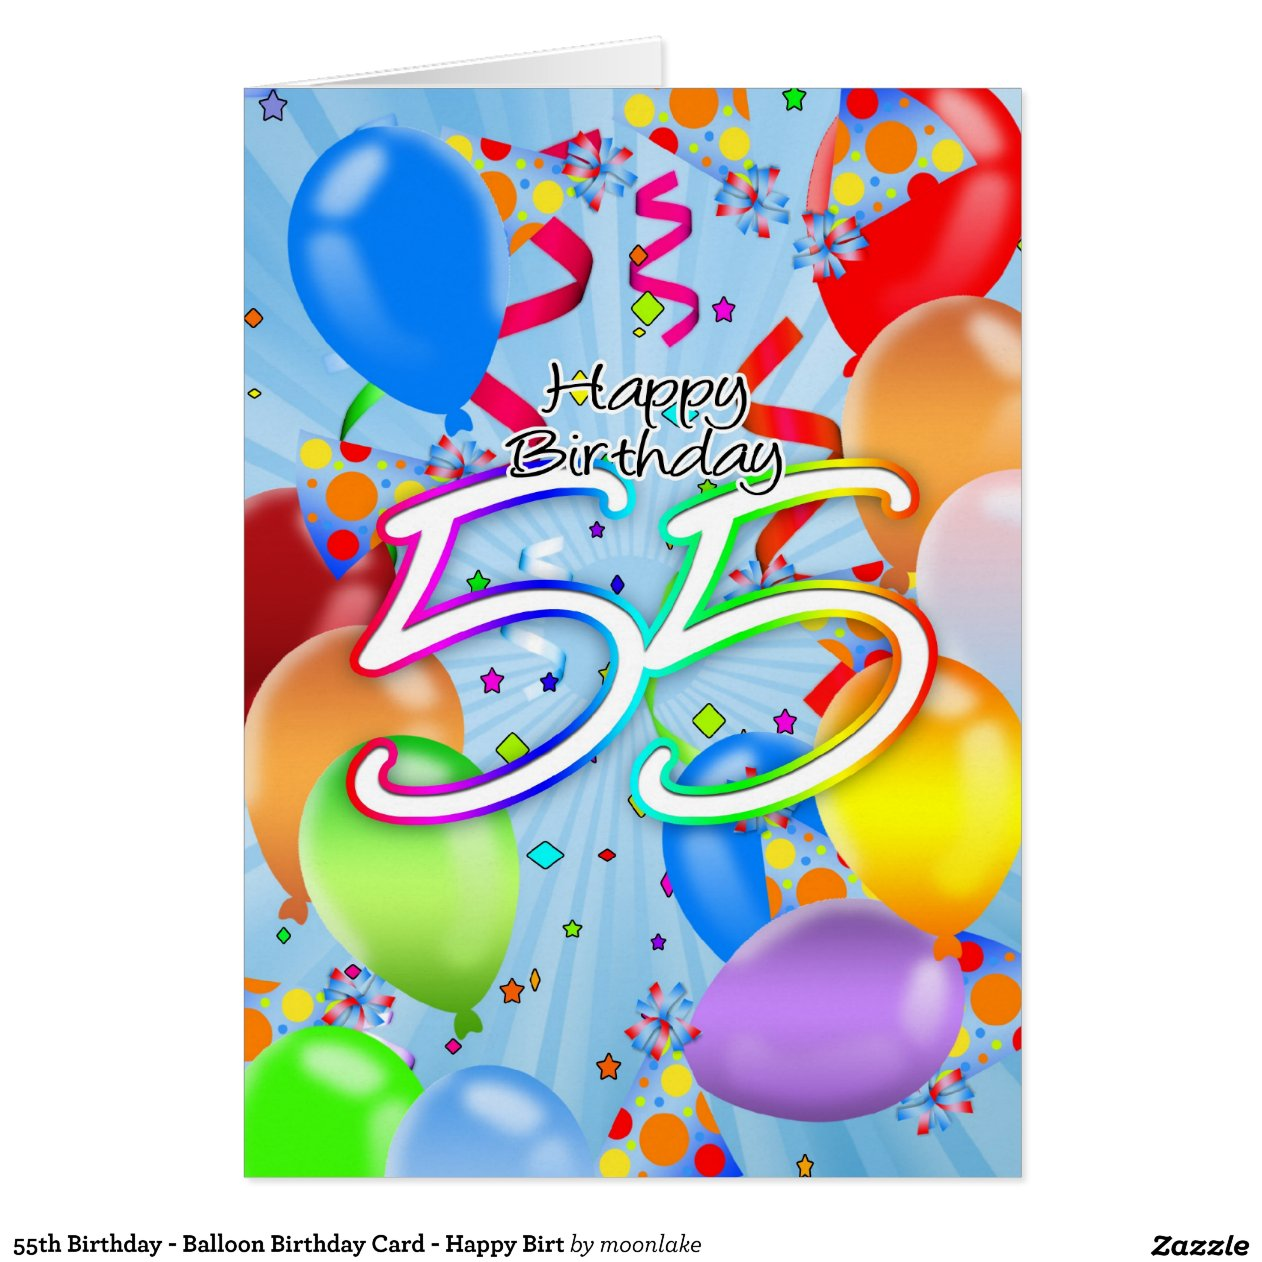 55th Birthday Balloon Card Happy Birt